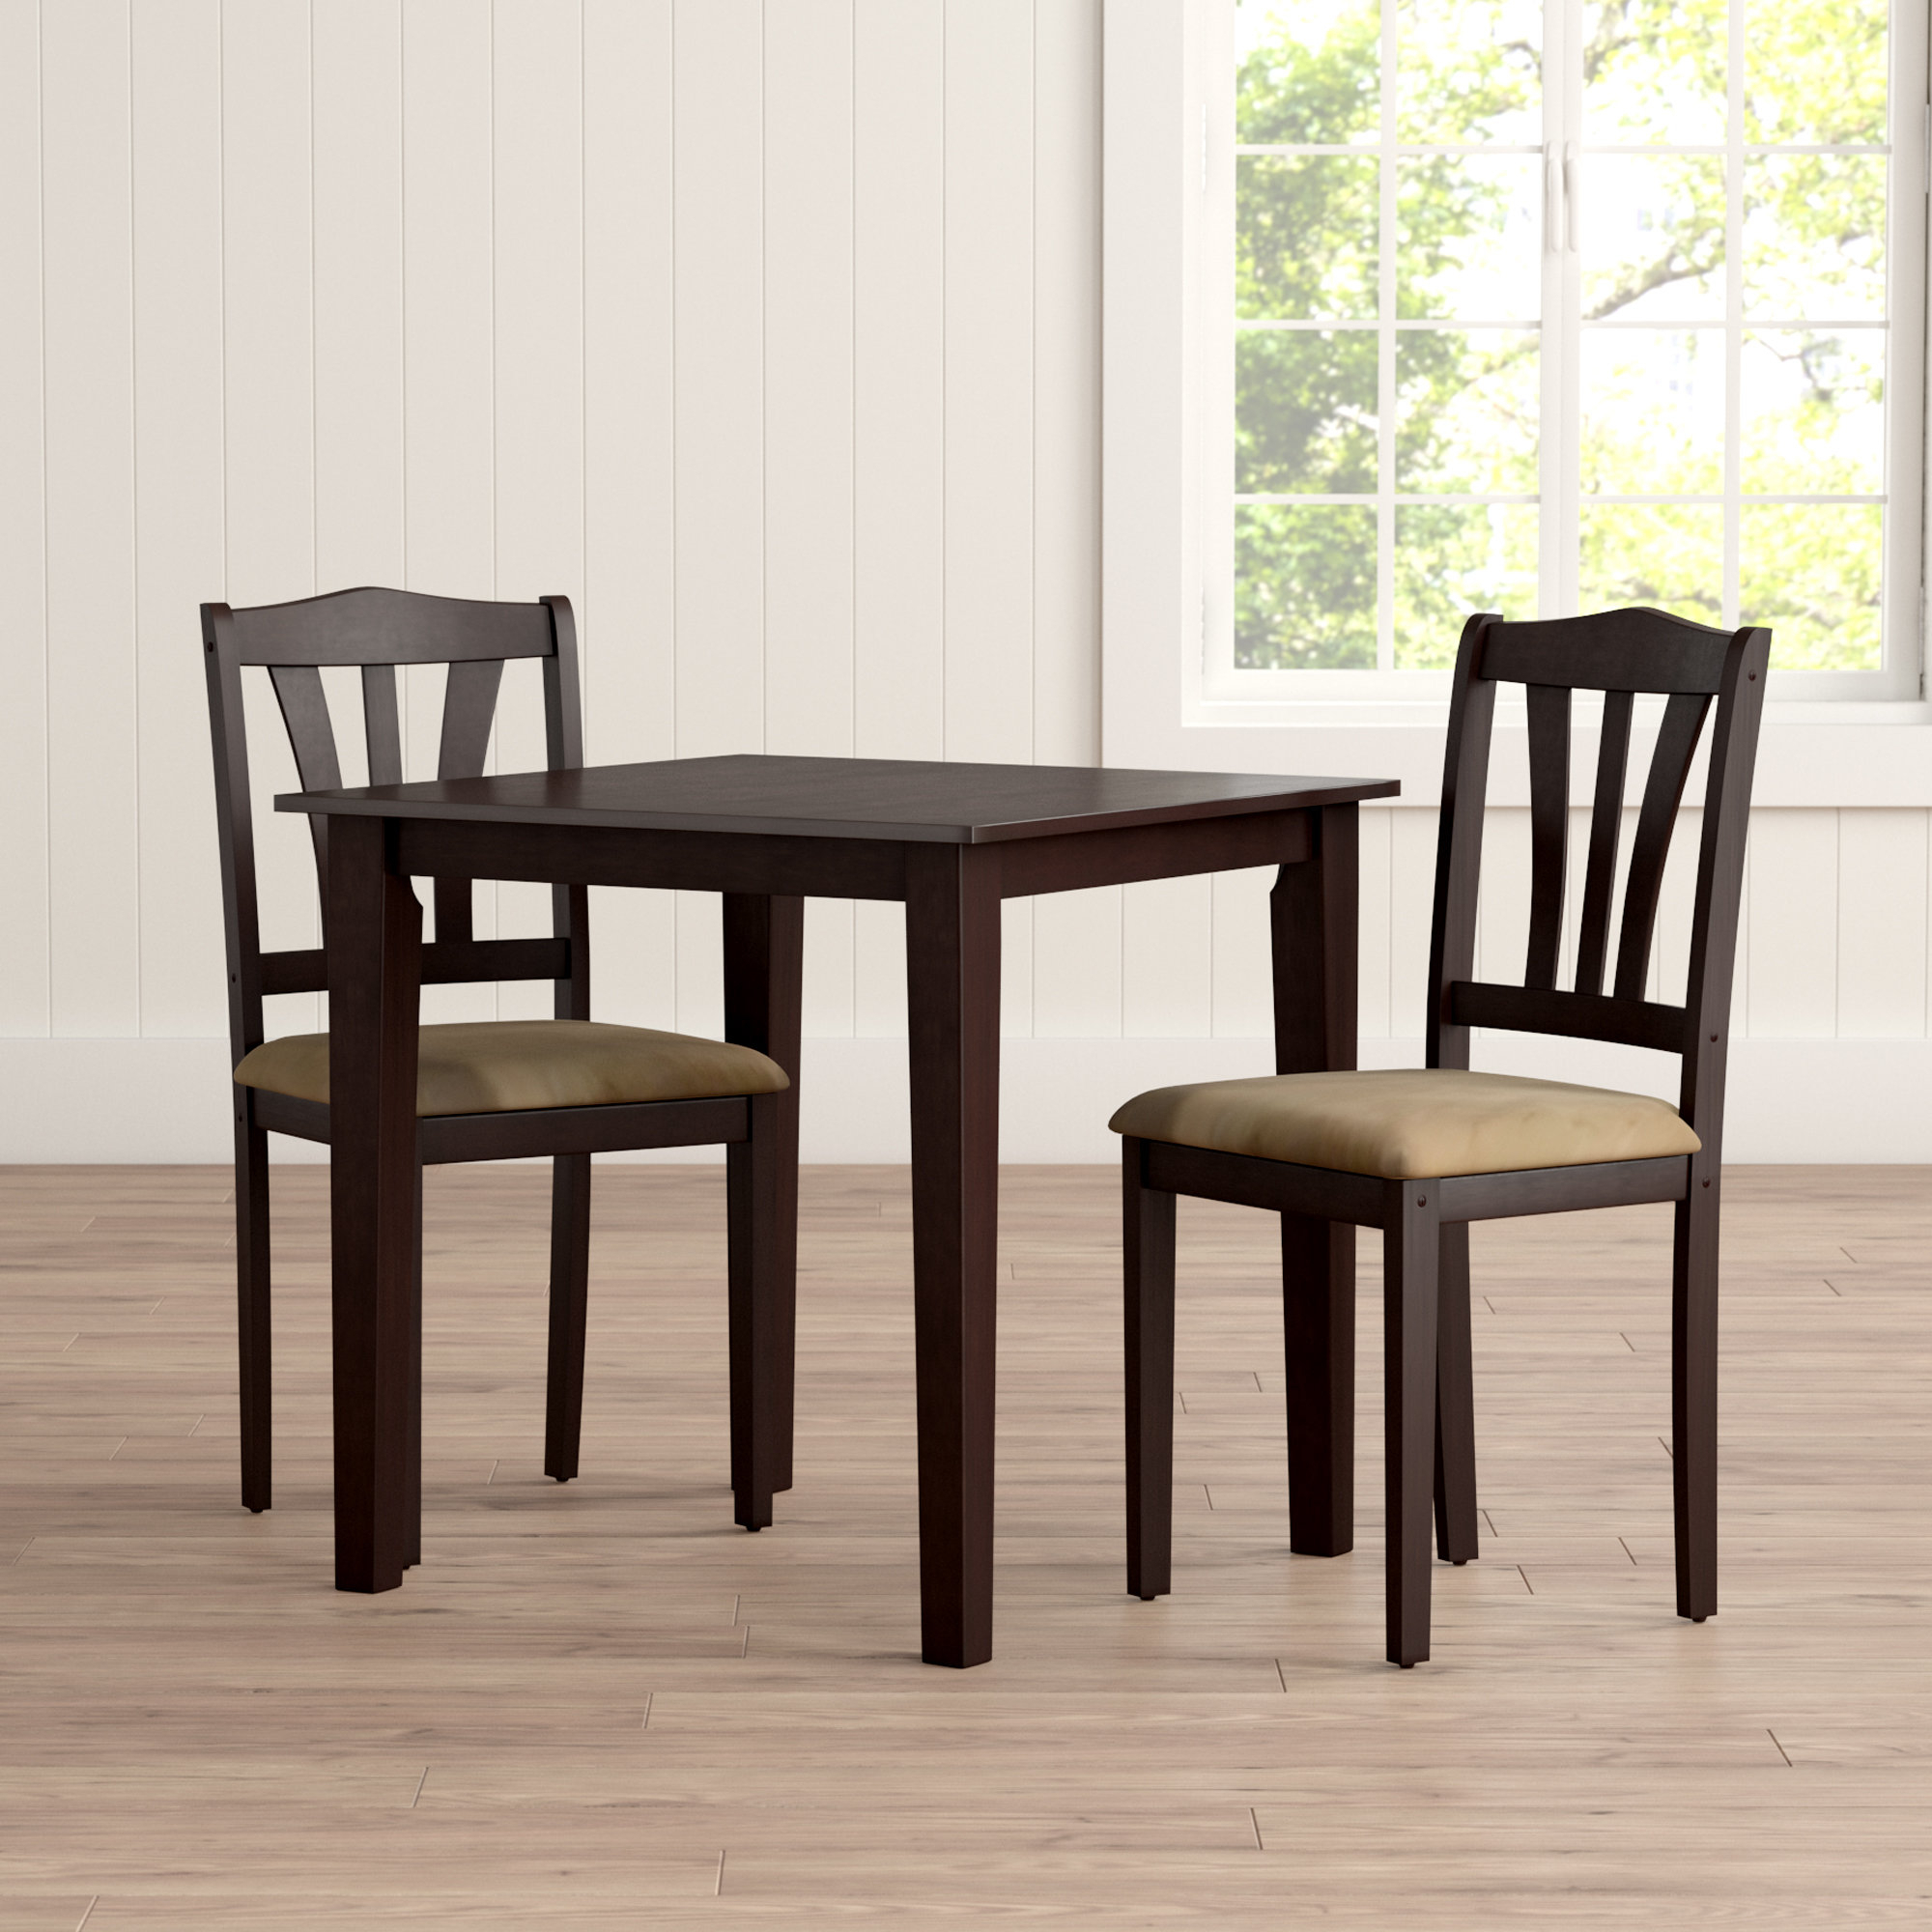 Dinah 3 Piece Dining Set Inside Current Ryker 3 Piece Dining Sets (Photo 6 of 20)